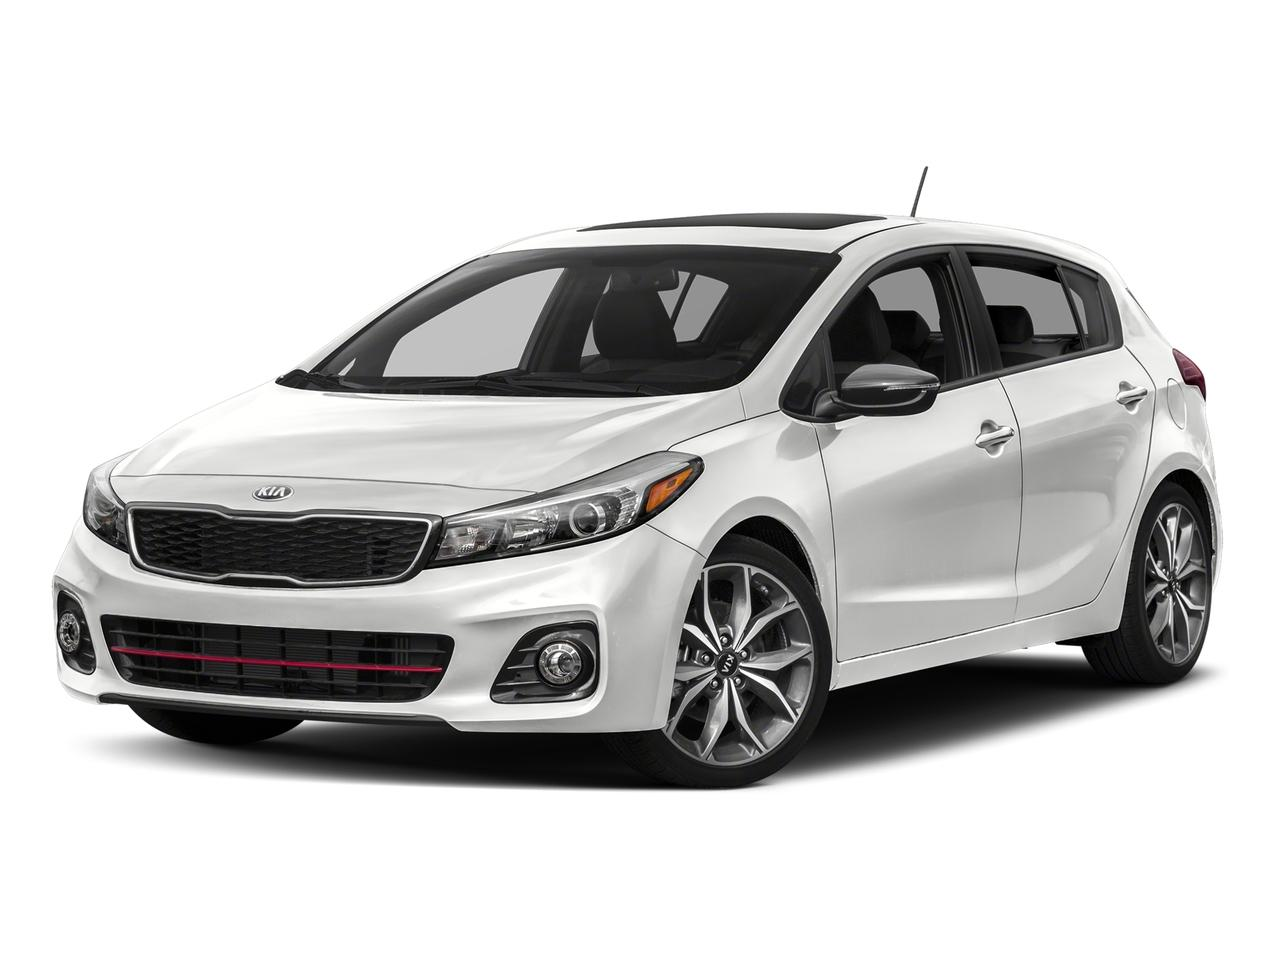 2017 Kia Forte5 Vehicle Photo in Bowie, MD 20716